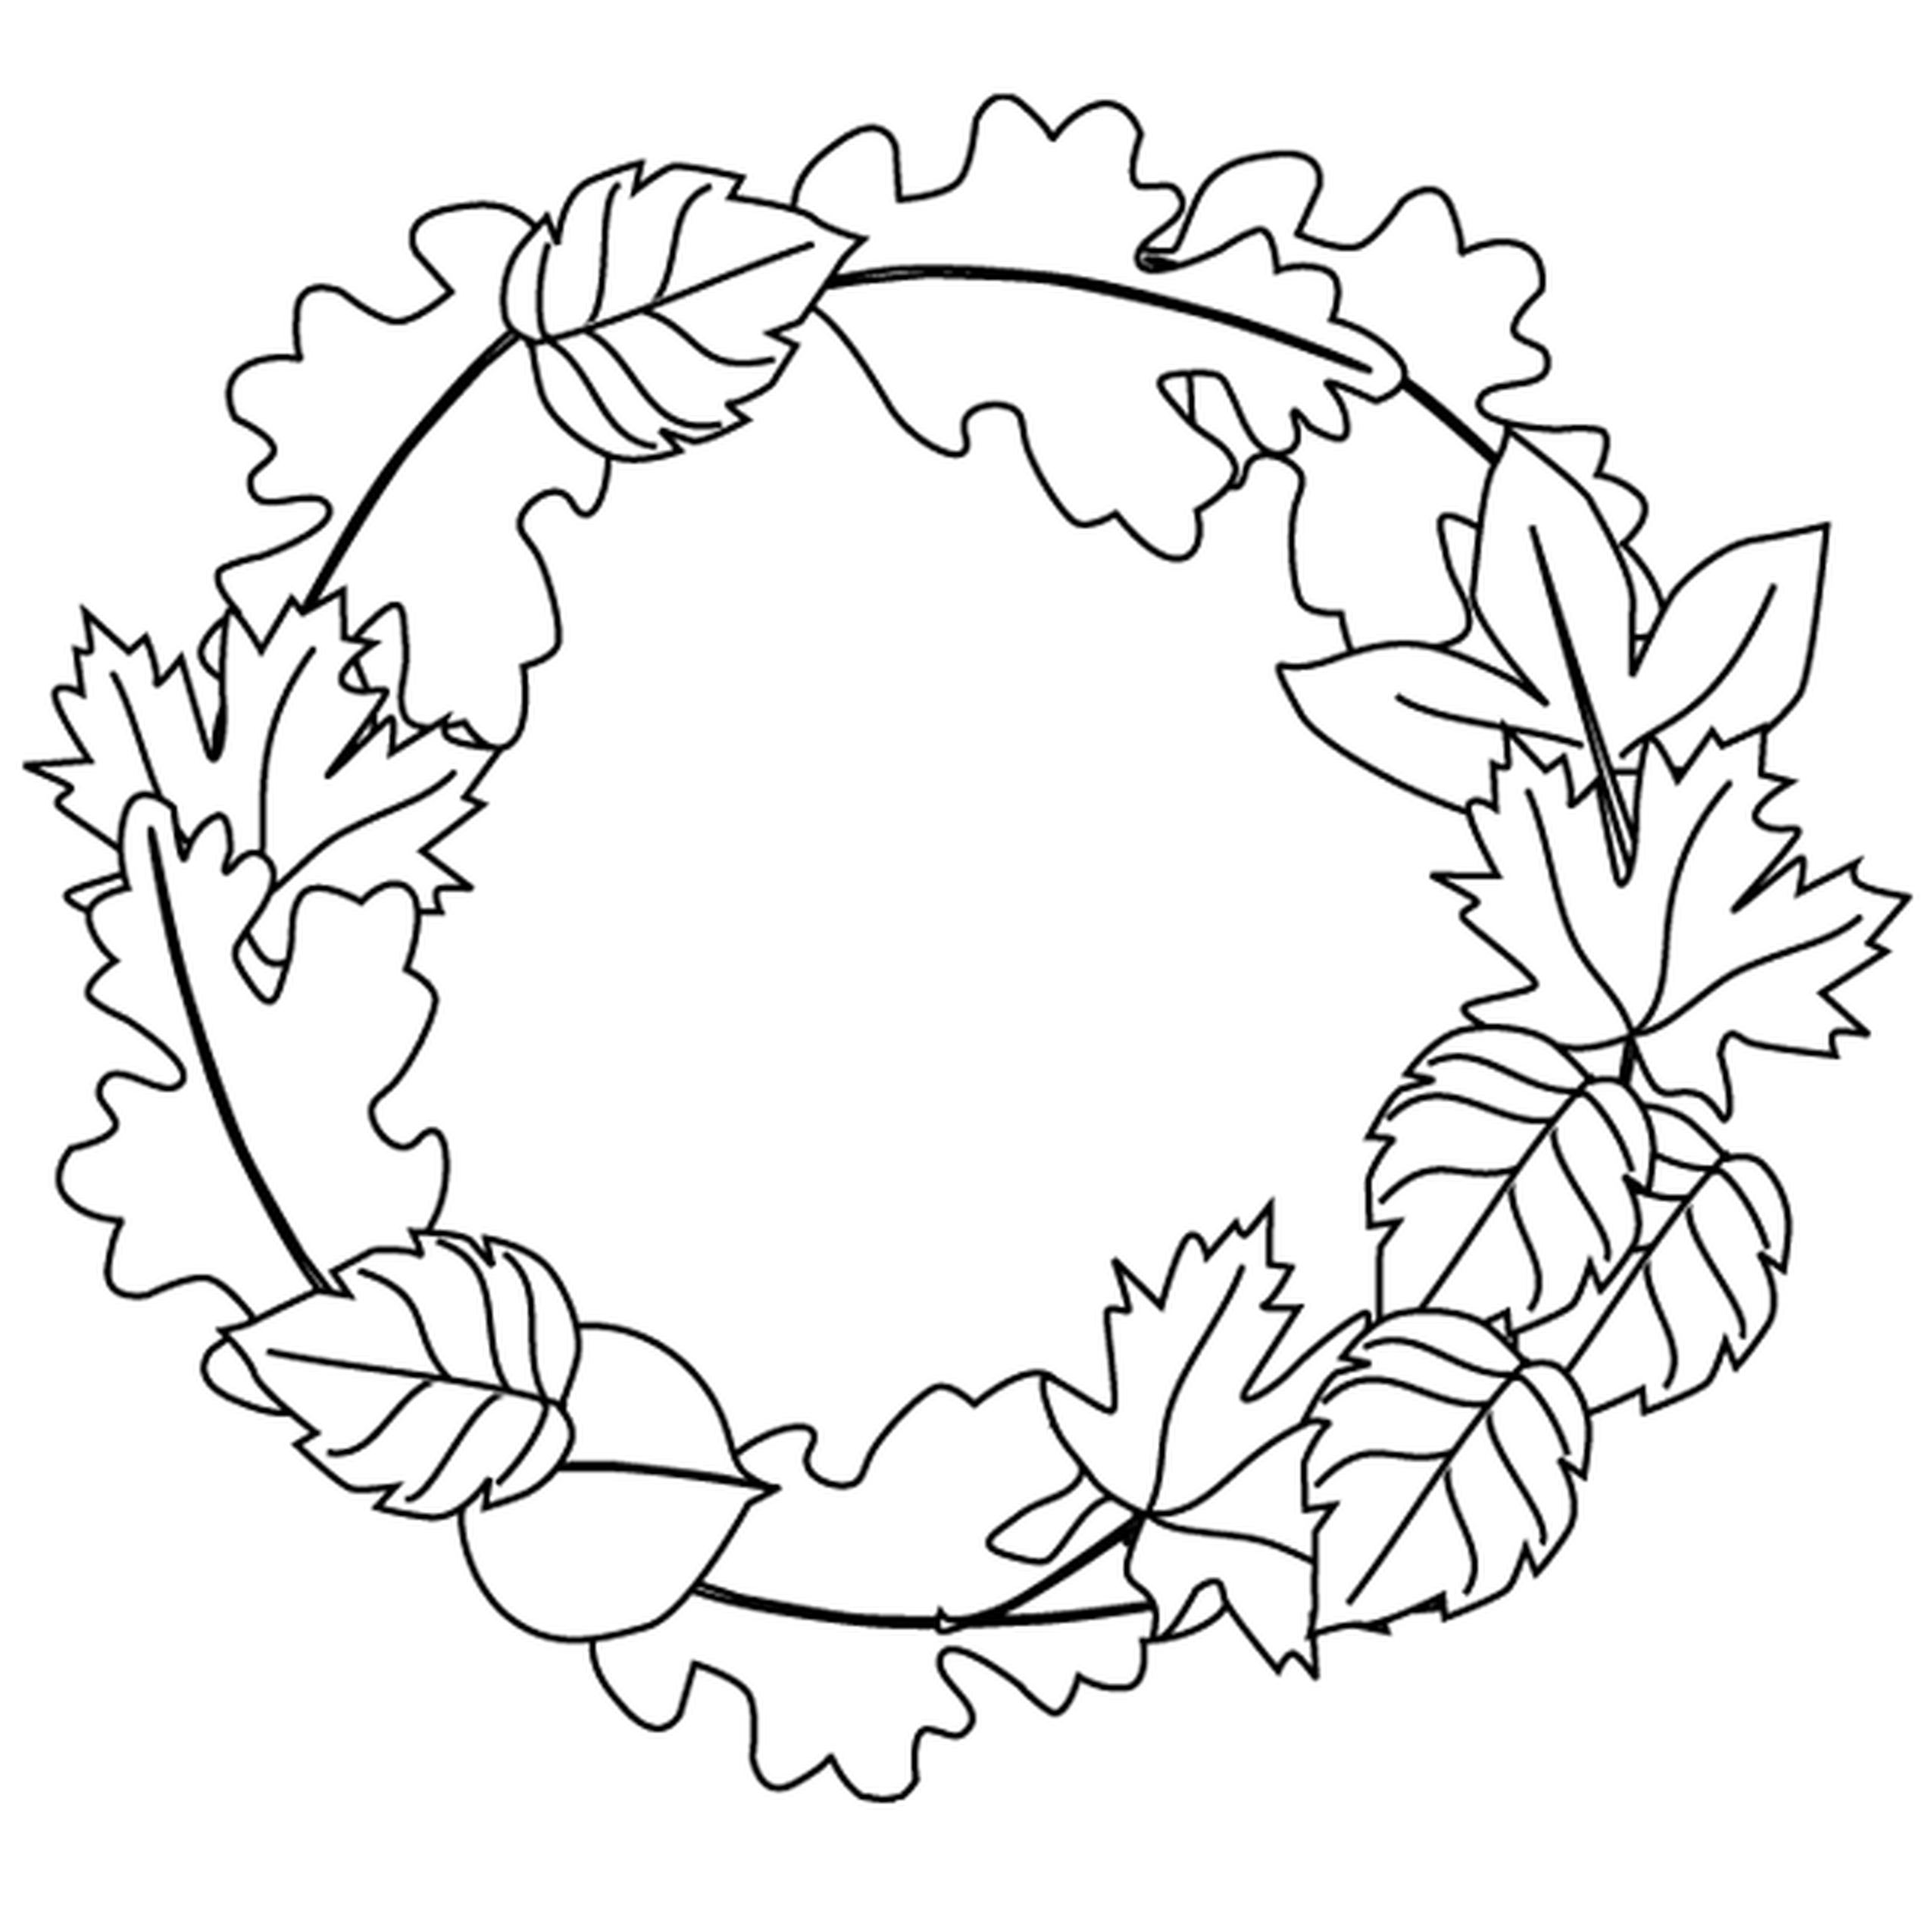 2550x2516 Cool Fall Leaves Clip Art Coloring Pages Vintage Maple